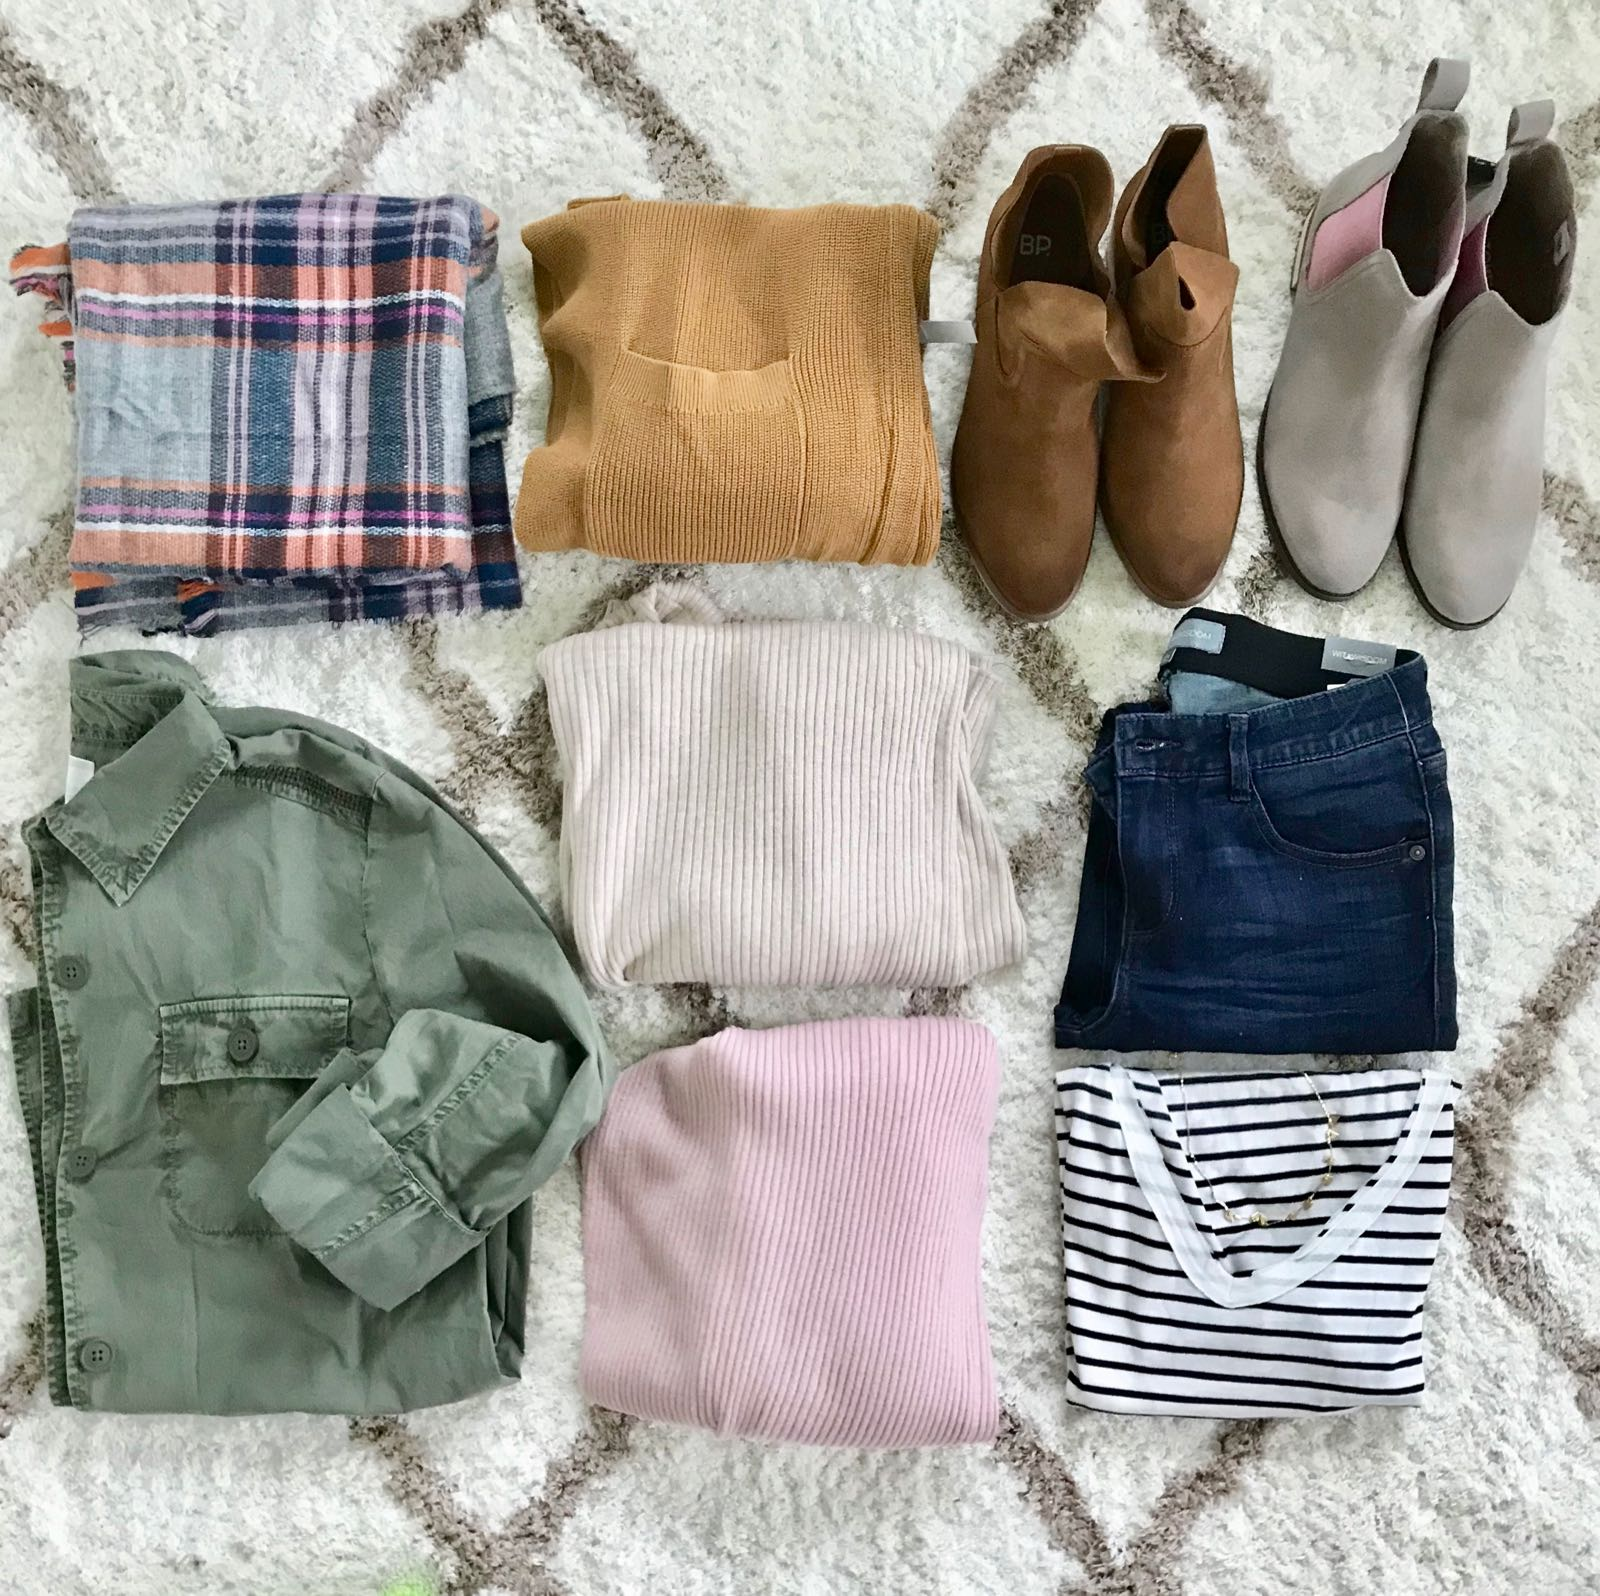 Nordstrom Anniversary Sale - budget buys and easy outfit ideas!